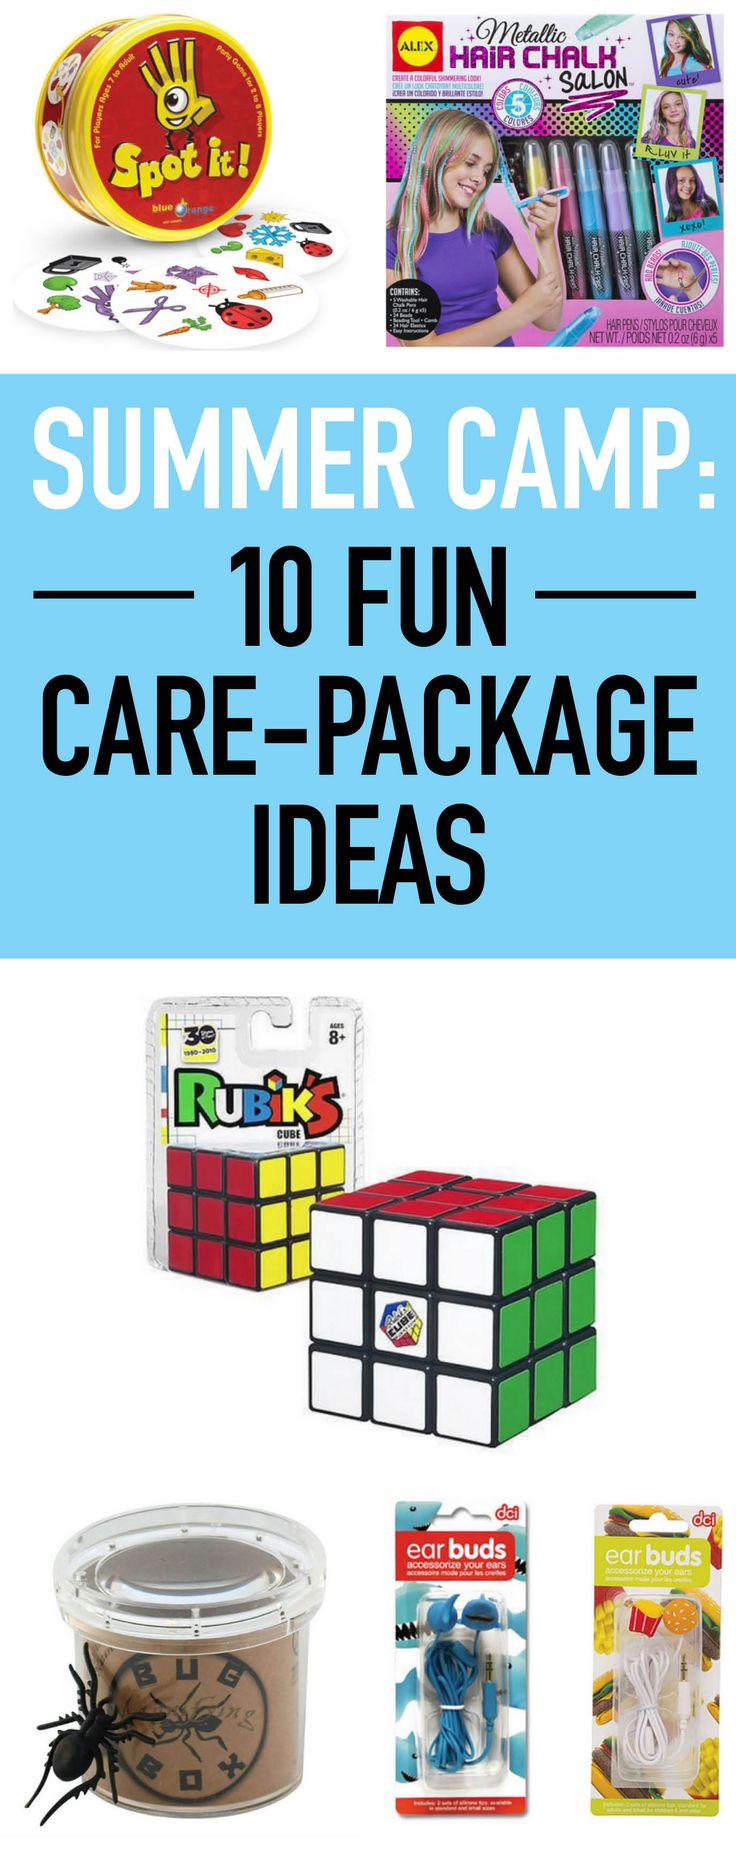 Surprise your kids with these fun care-package ideas. #carepackages #summercamp